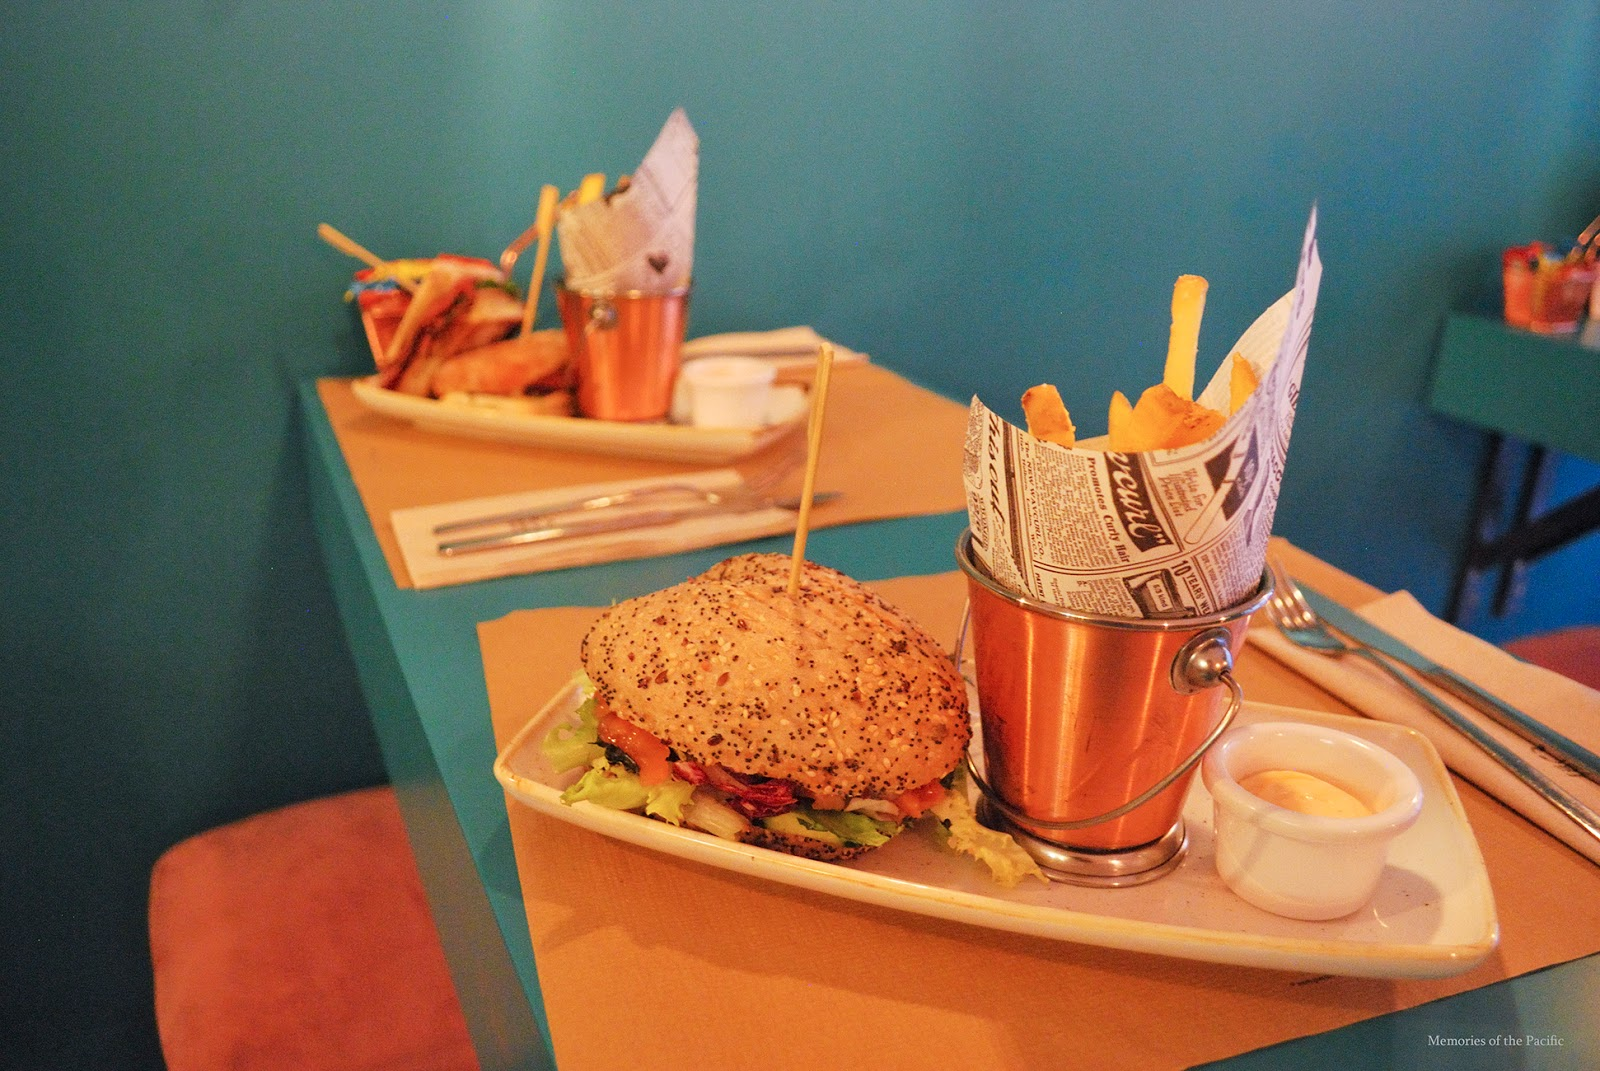 la sanducherie sandwiches restaurant madrid travel blogger